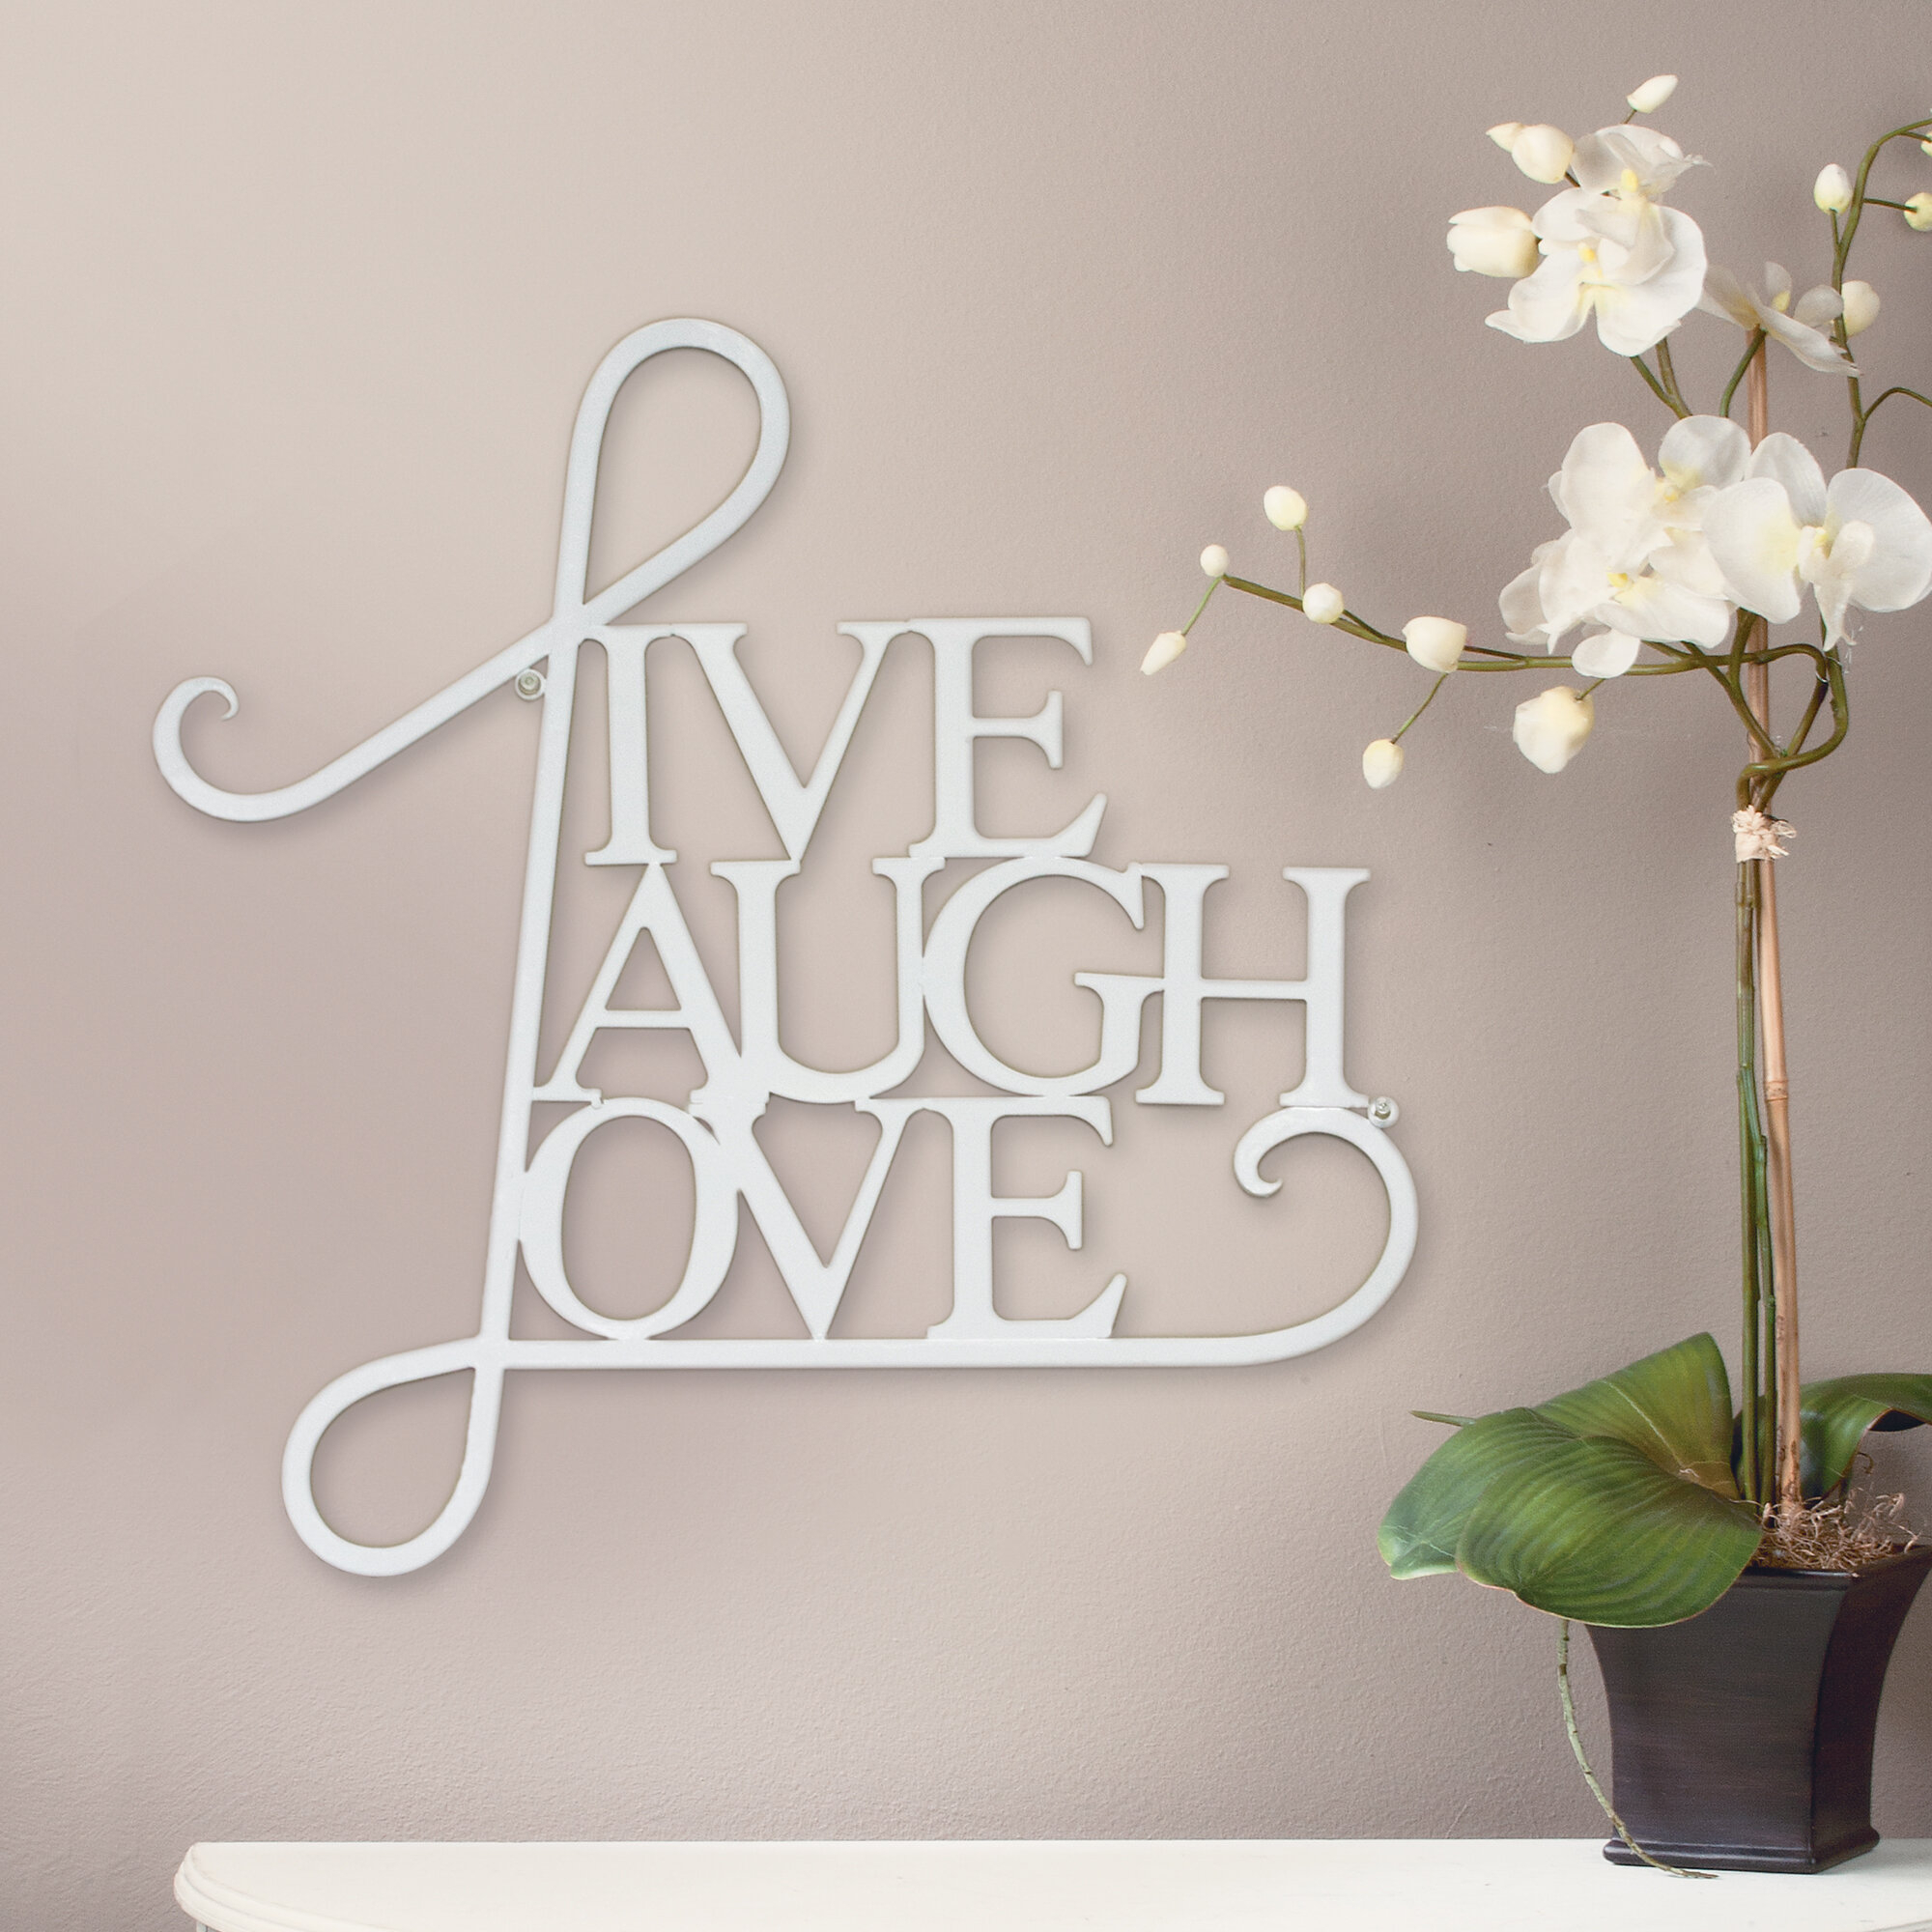 Faith, Hope, Love Raised Sign Wall Decor By Winston Porter For Most Popular Winston Porter Live, Laugh, Love Antique Copper Wall Decor & Reviews (View 7 of 20)